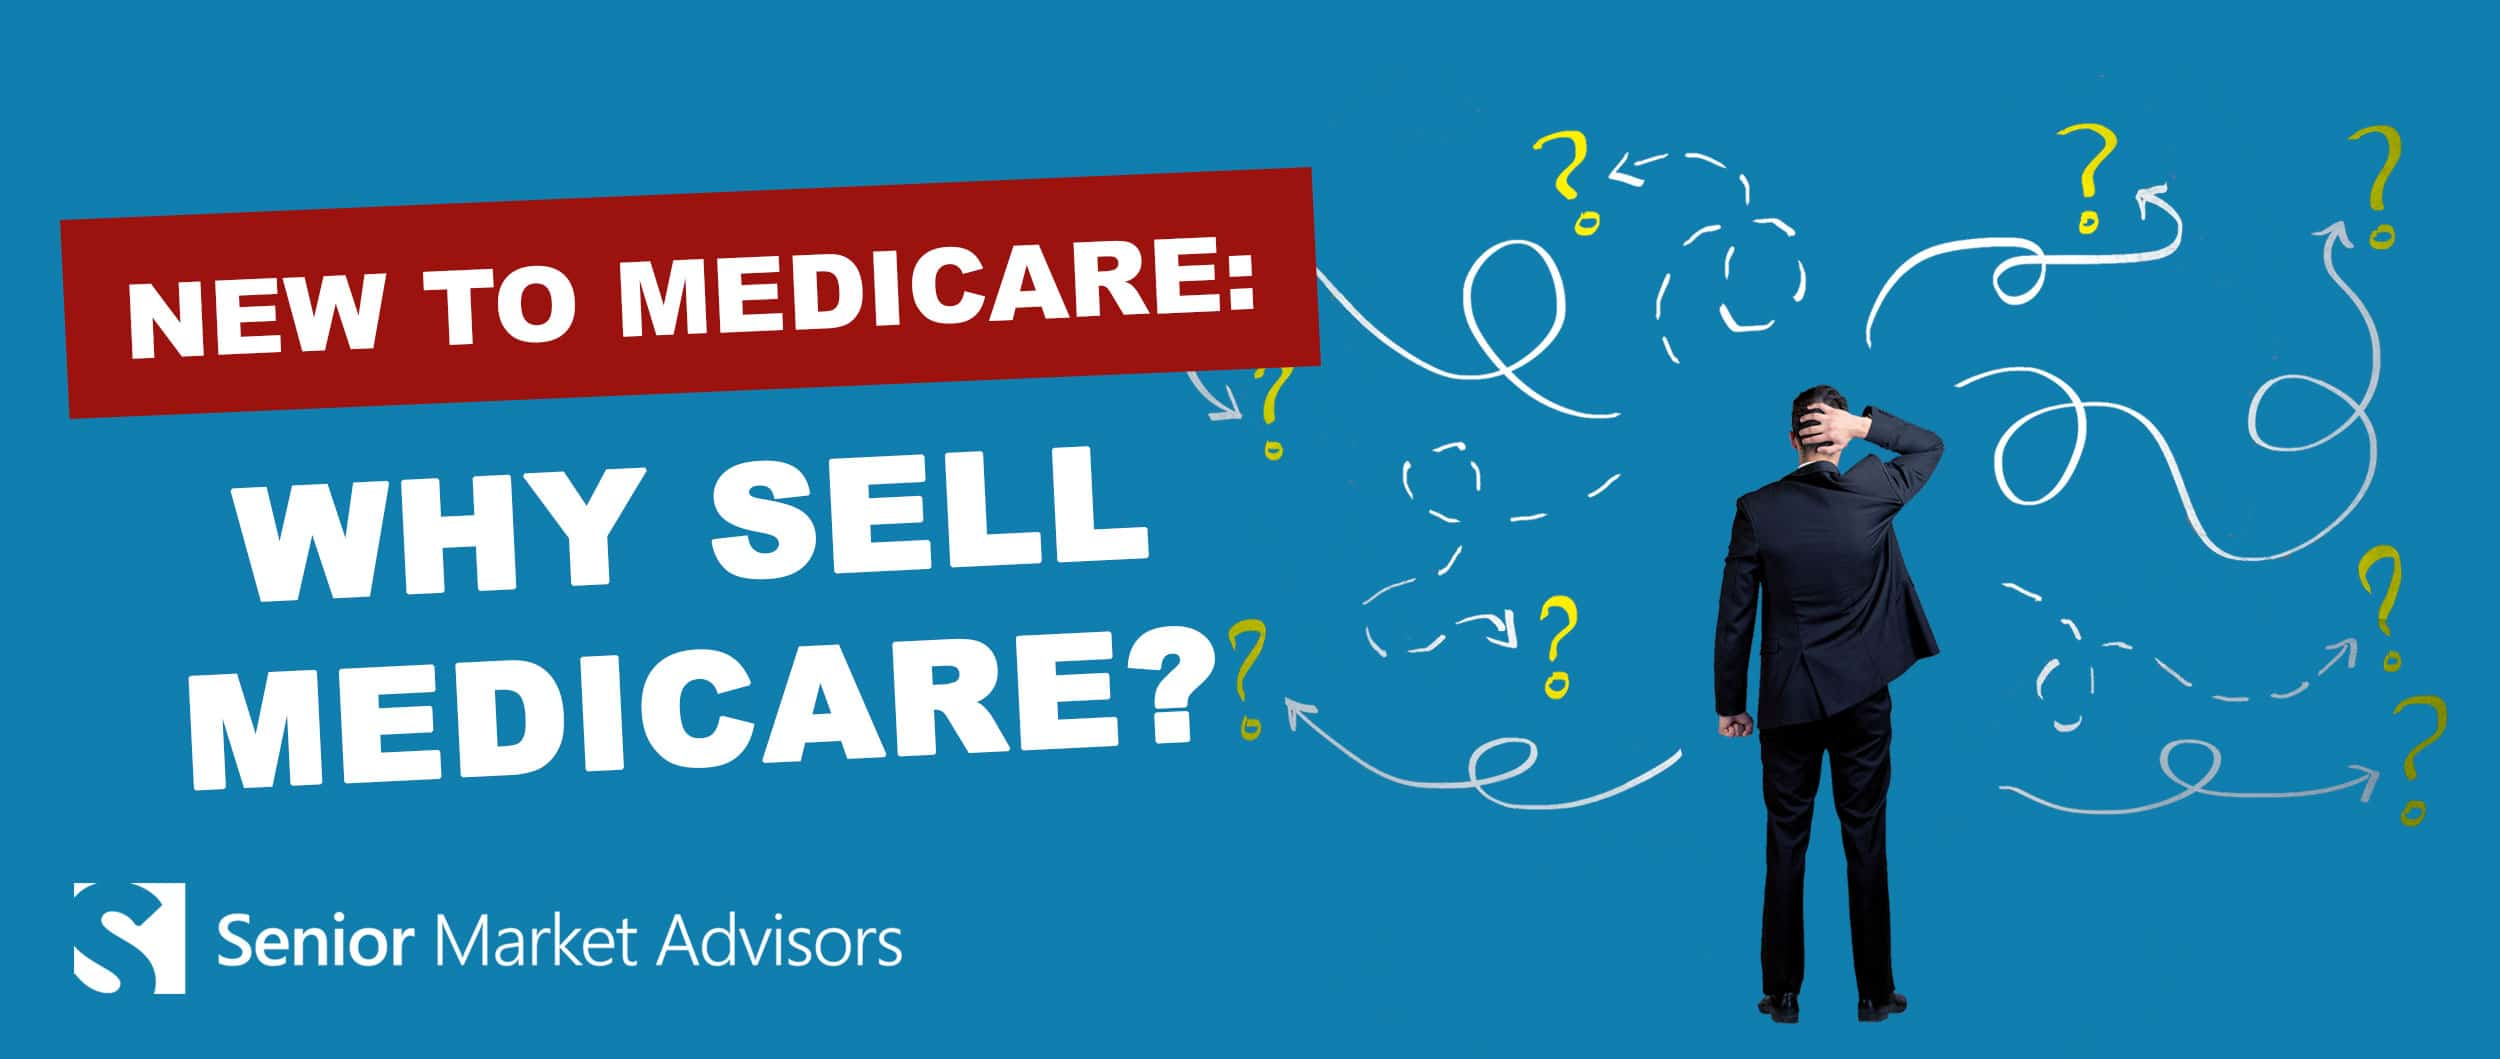 New To Medicare: Why Sell Medicare?